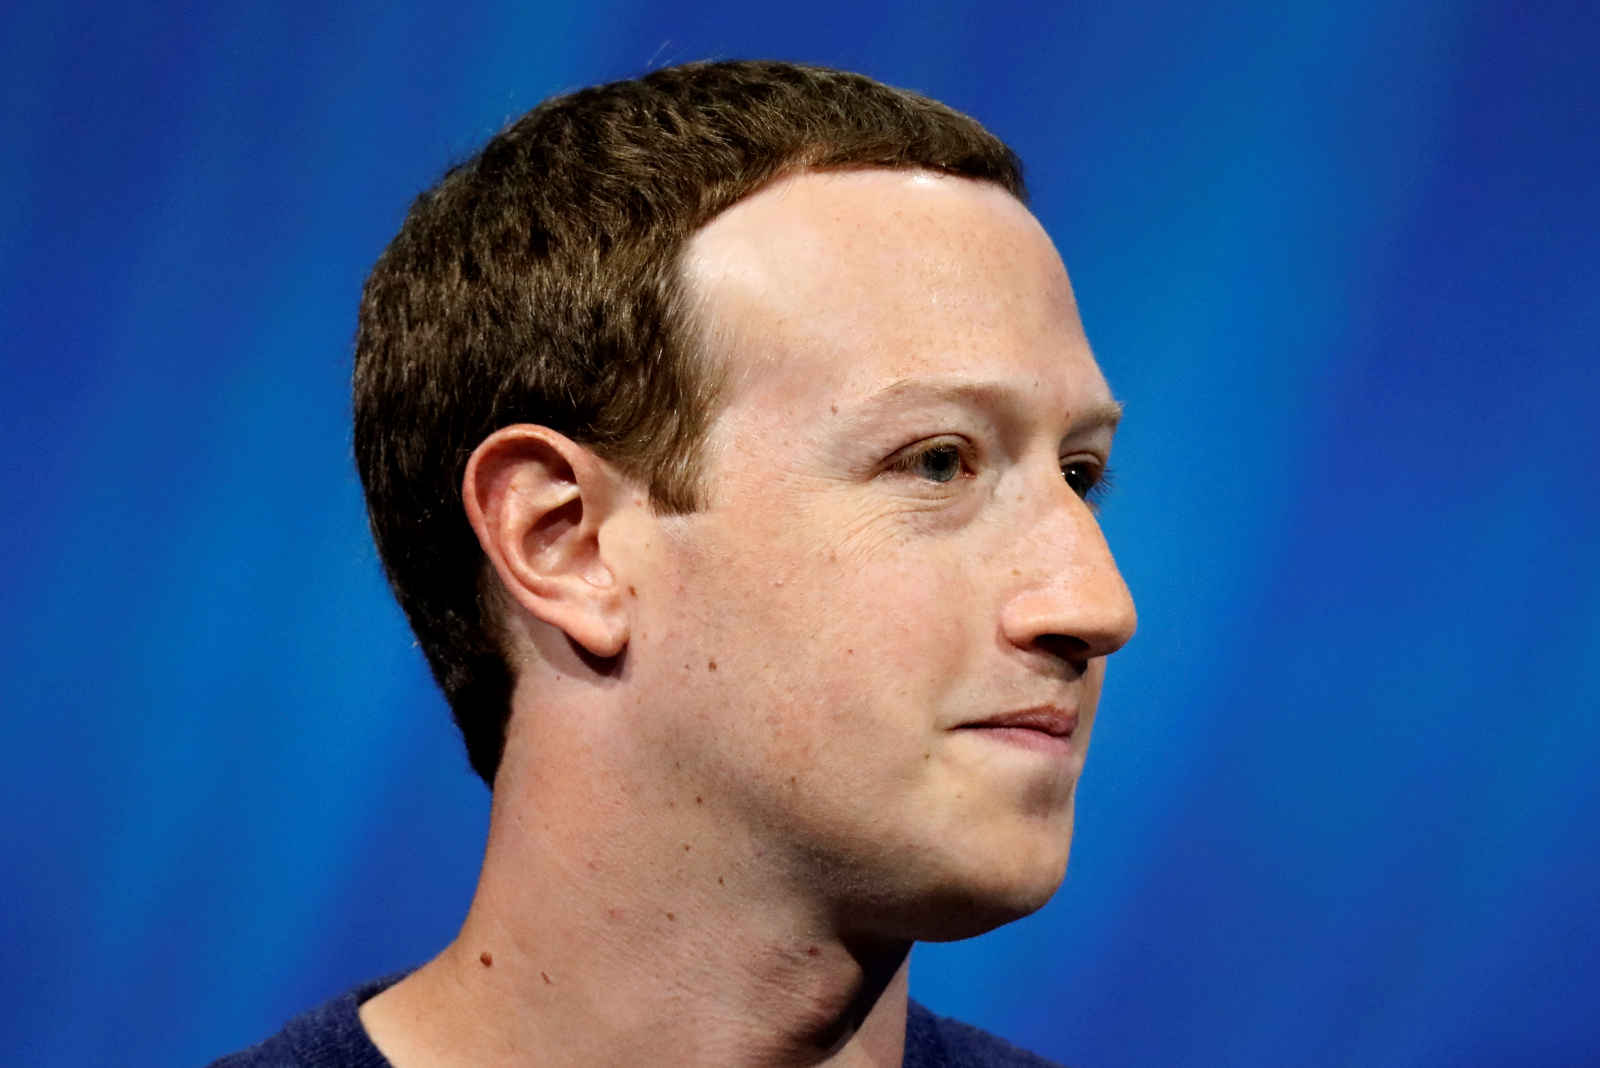 Holocaust deniers won't be banned from Facebook